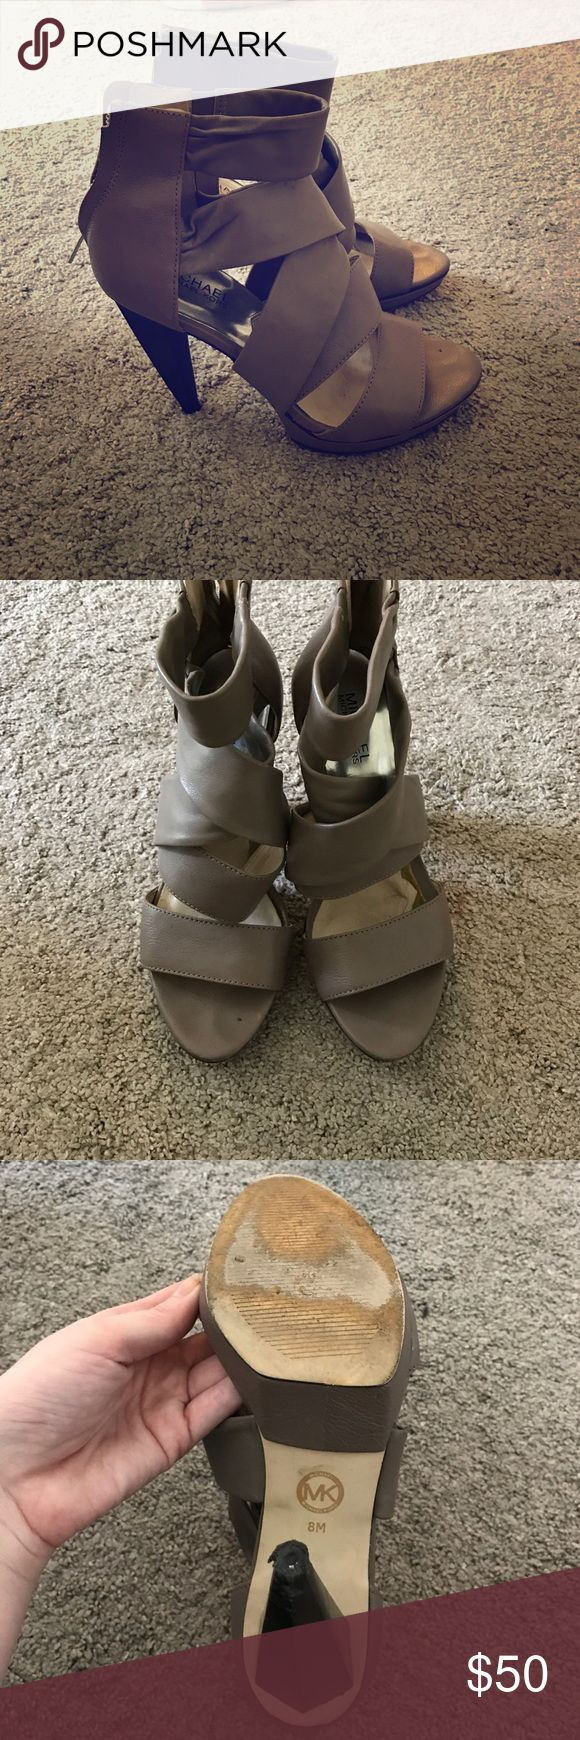 Michael Michael kors straps heels Beige strappy heels. Michael Michael Kors brand. Some wear and tear. Material is starting to peel at the ball of the foot but can be easily fixed. Can't see it when your foot is in them! Leather material. 4 inch heel MICHAEL Michael Kors Shoes Heels